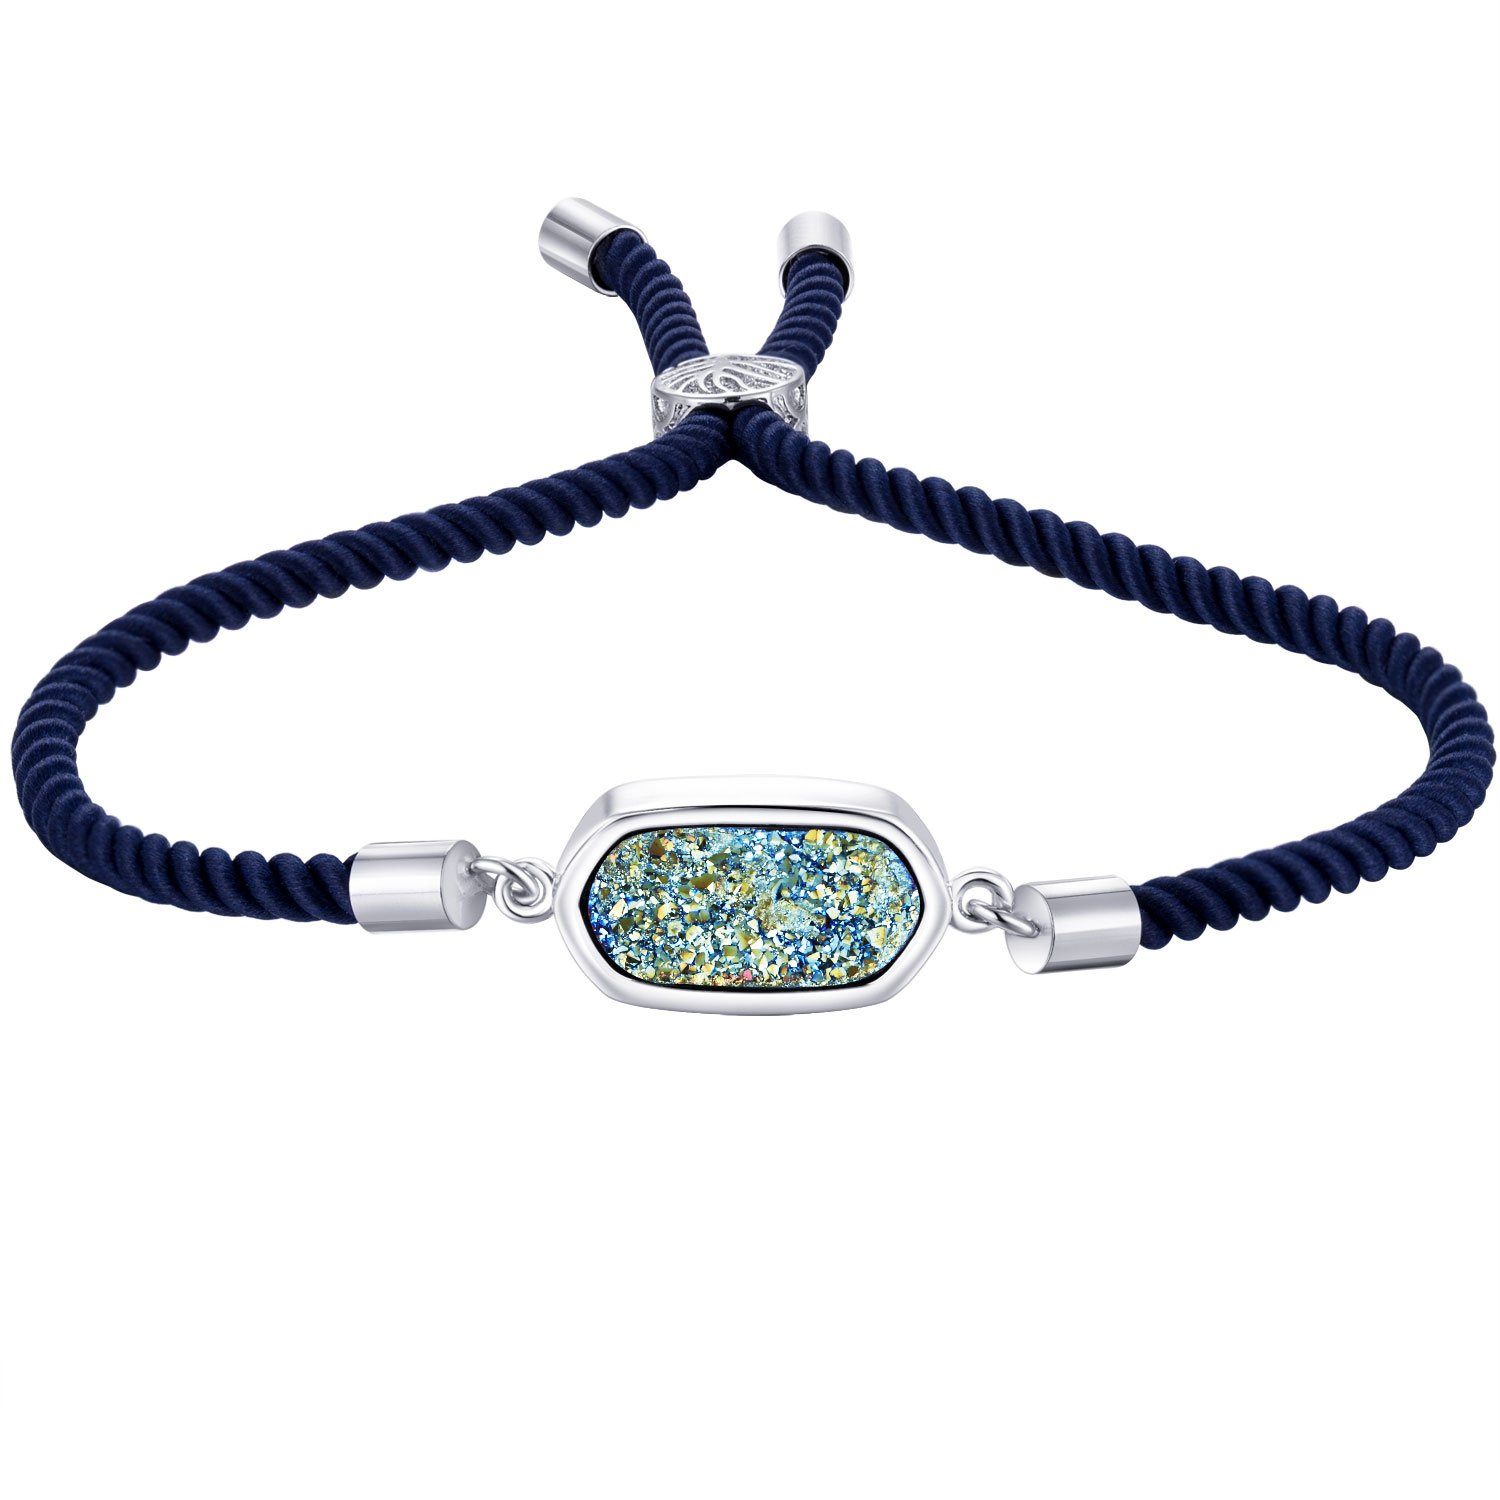 WISHMISS Women's Classicy Square Natural Druzy Adjustable Handmade Nylon Leather Bolo Bracelet (3 Colors) (Green)